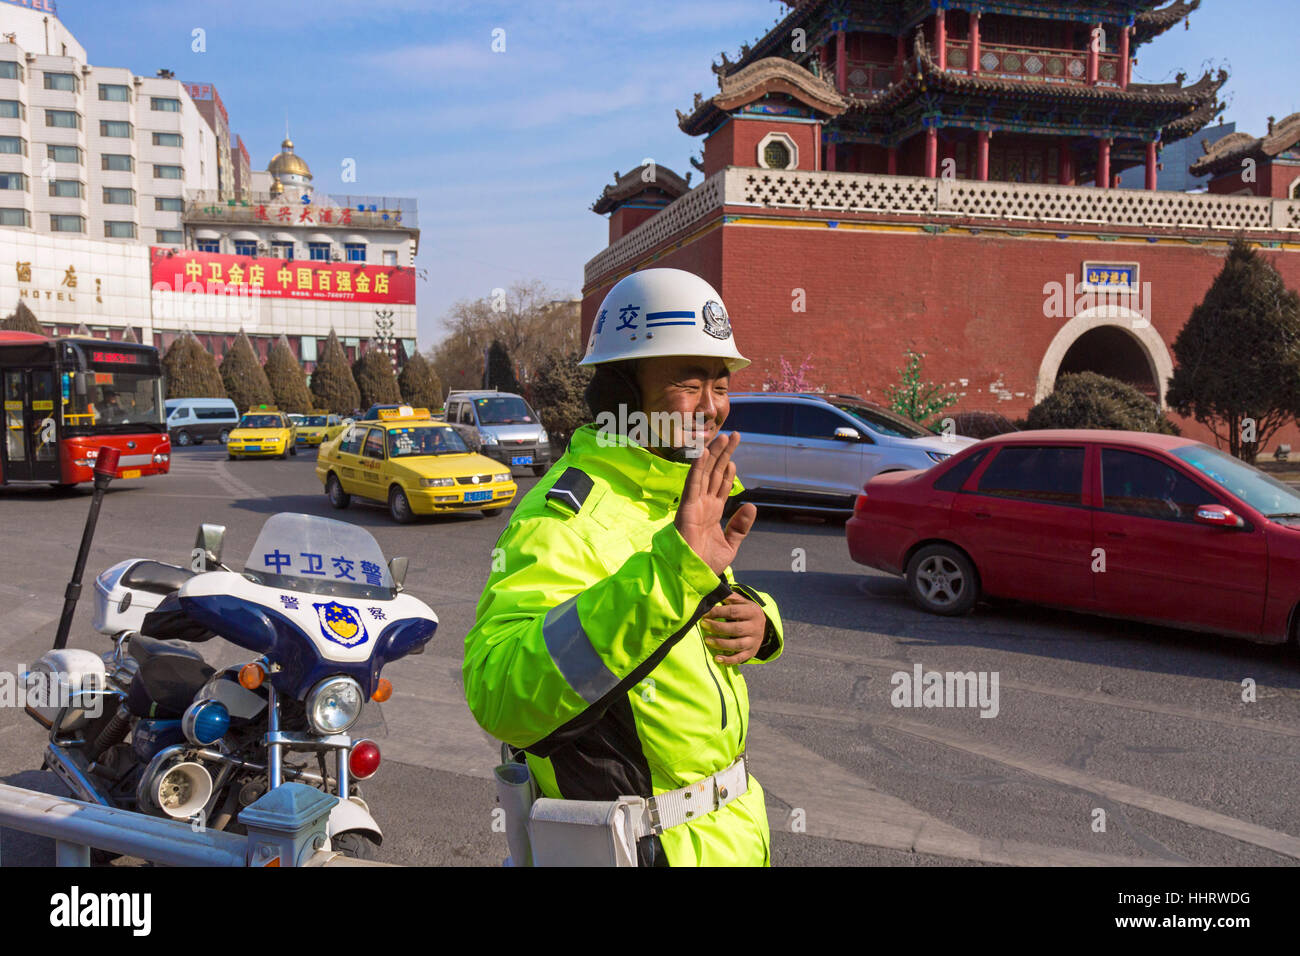 Traffic police at Drum Tower junction, Zhongwei, Ningxia province, China - Stock Image